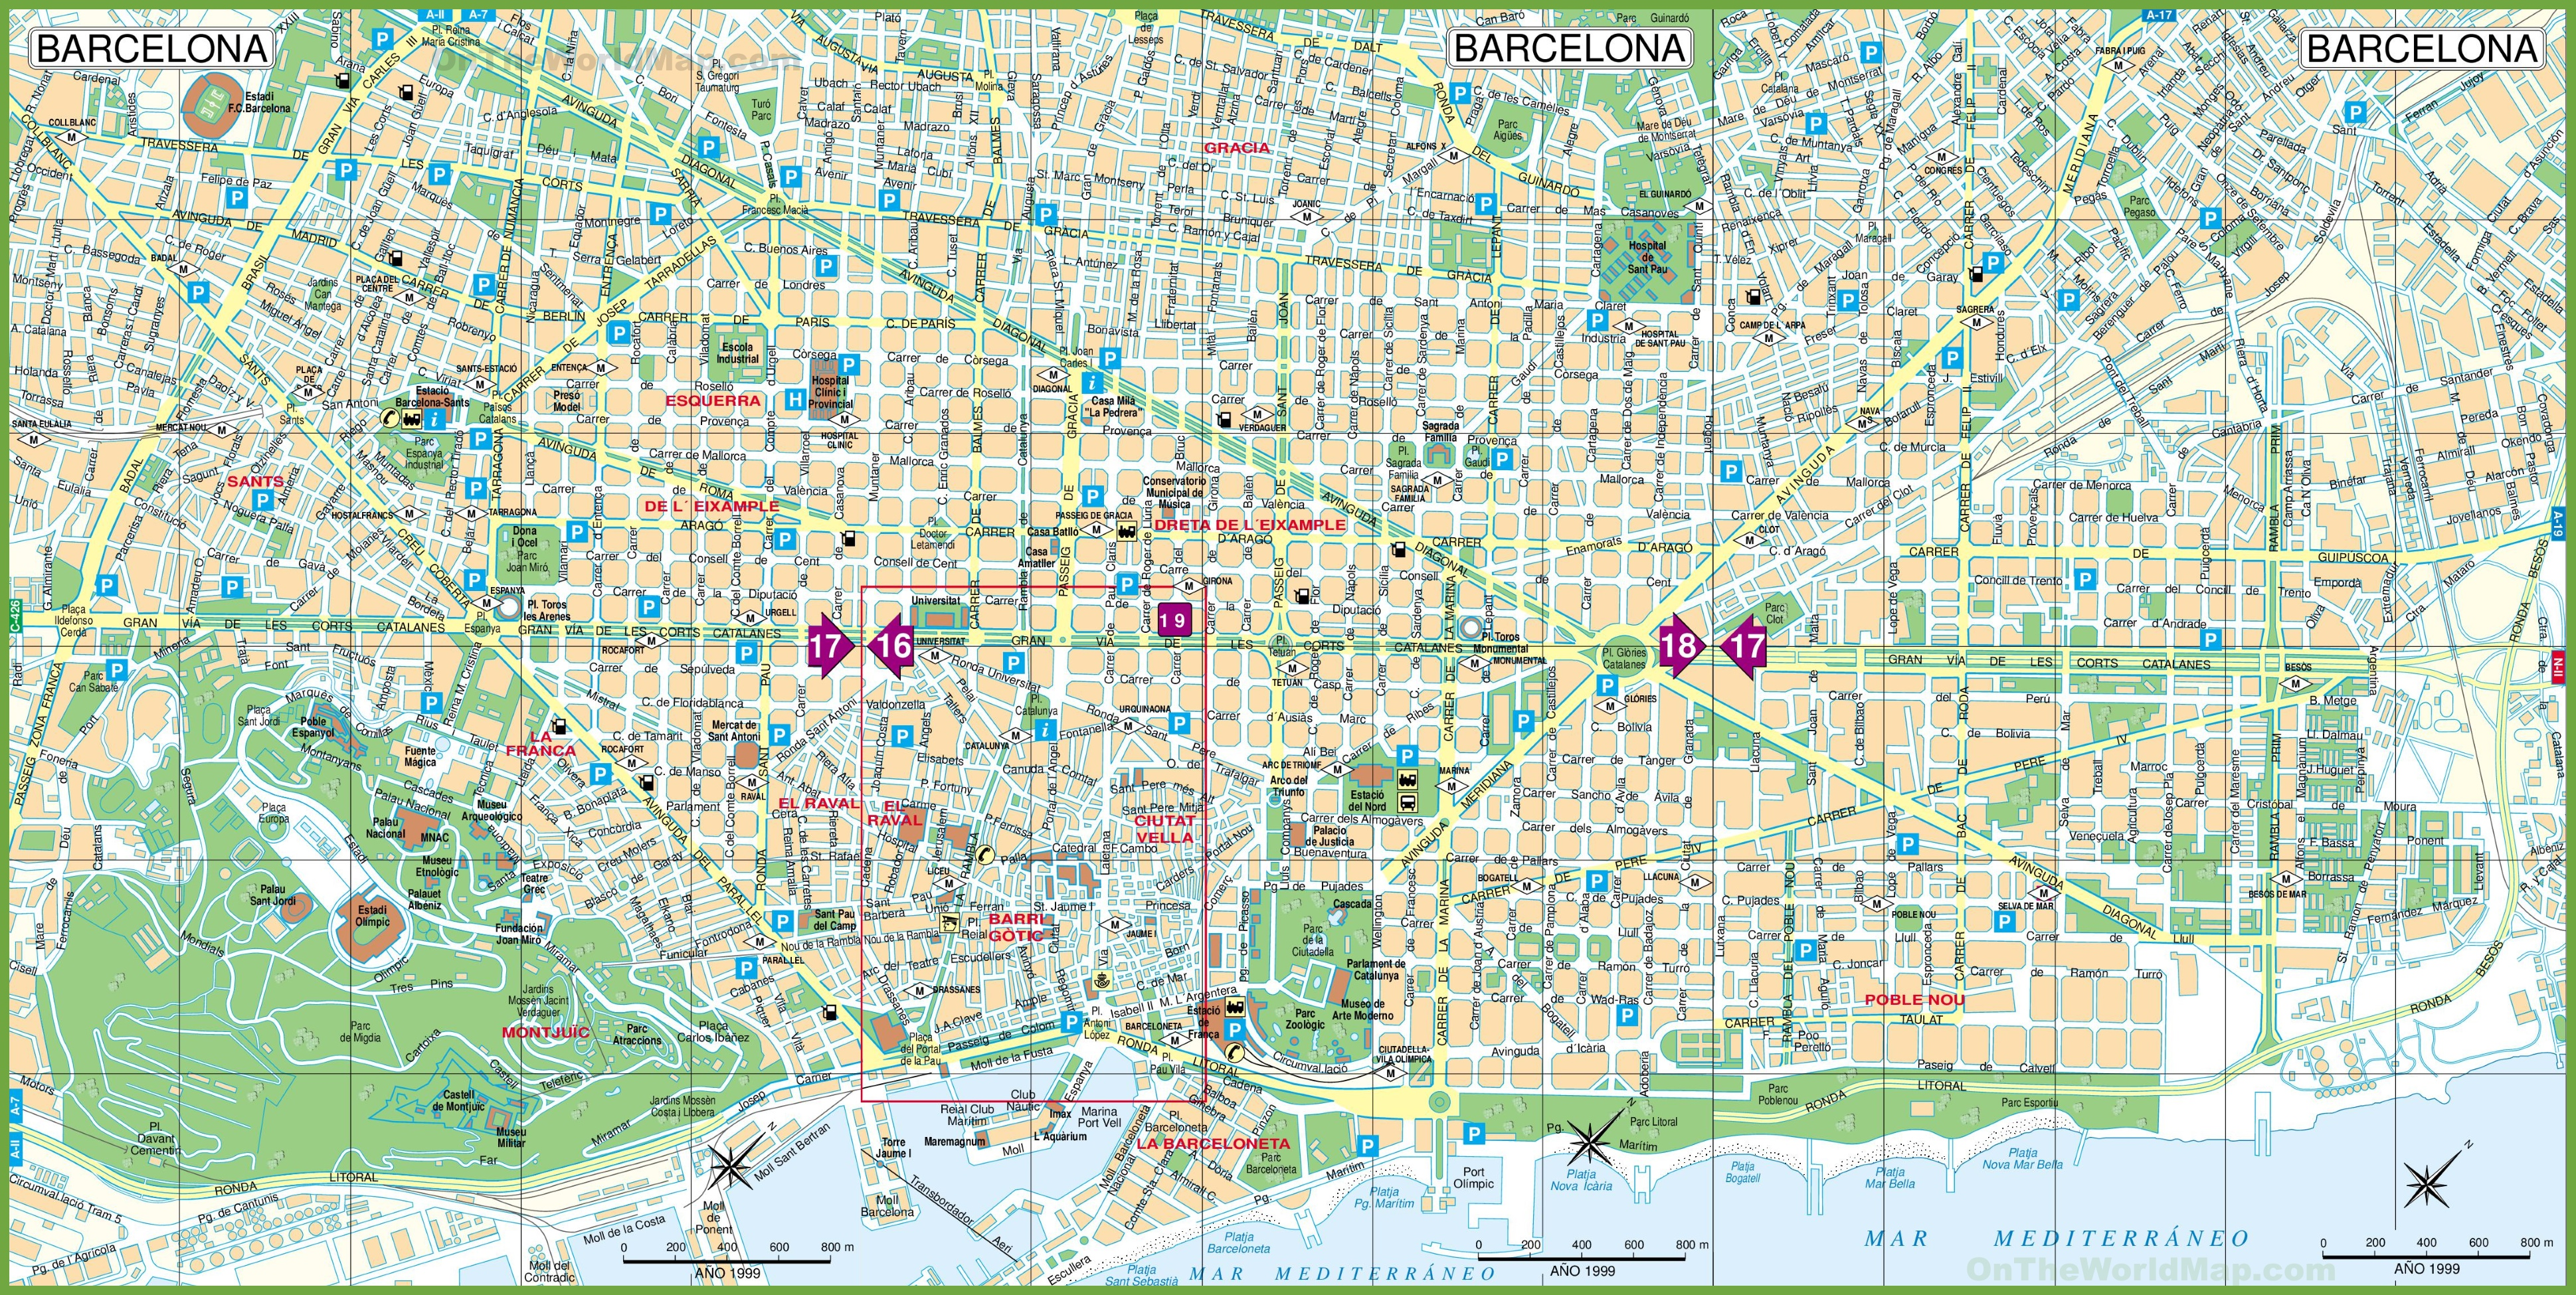 Barcelona Maps Spain – Tourist Map of Barcelona